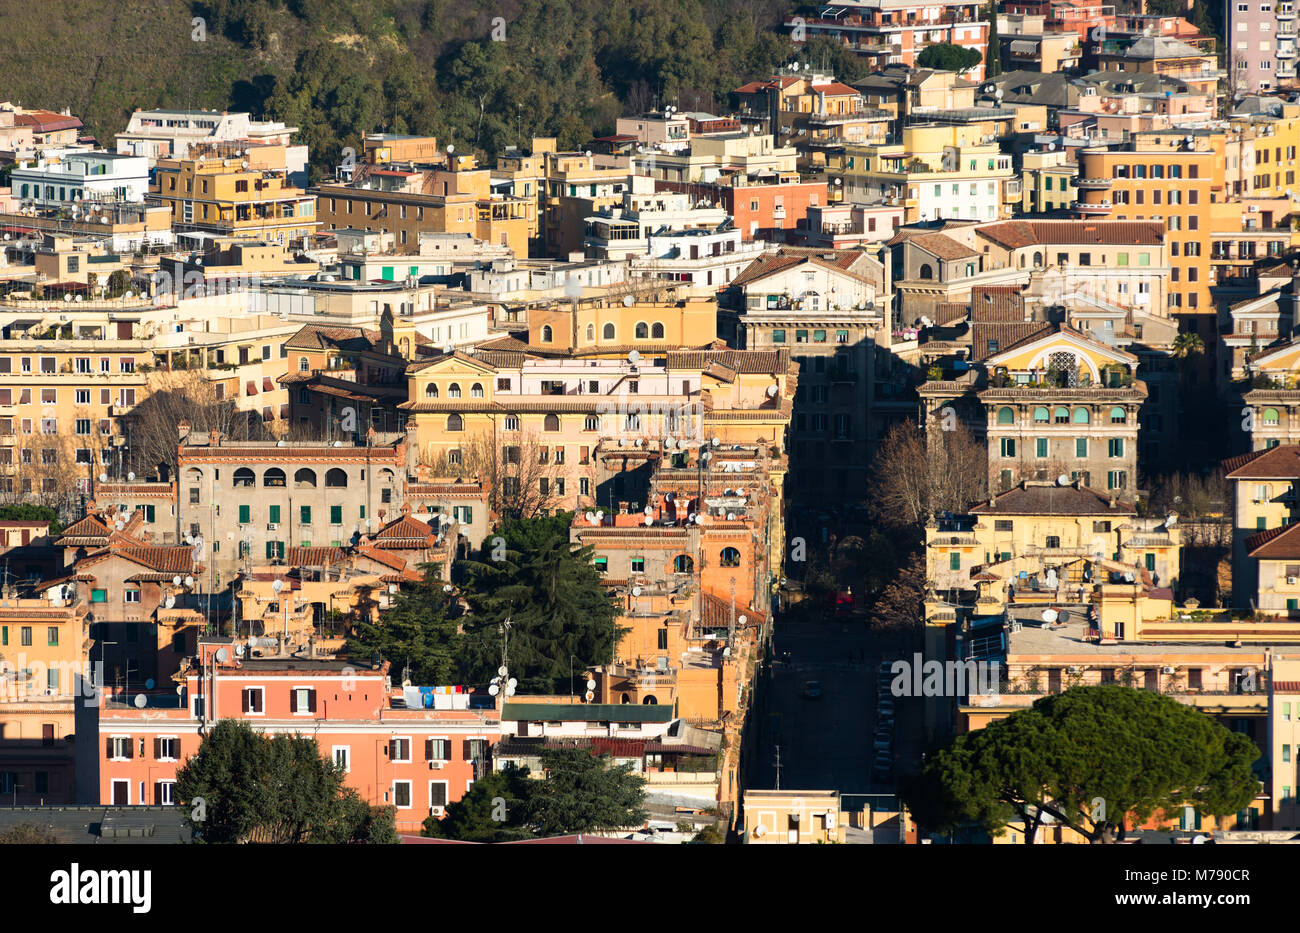 Rome urban sprawl seen from the top of St Peter's cathedral. Vatican city, Rome, Italy. - Stock Image